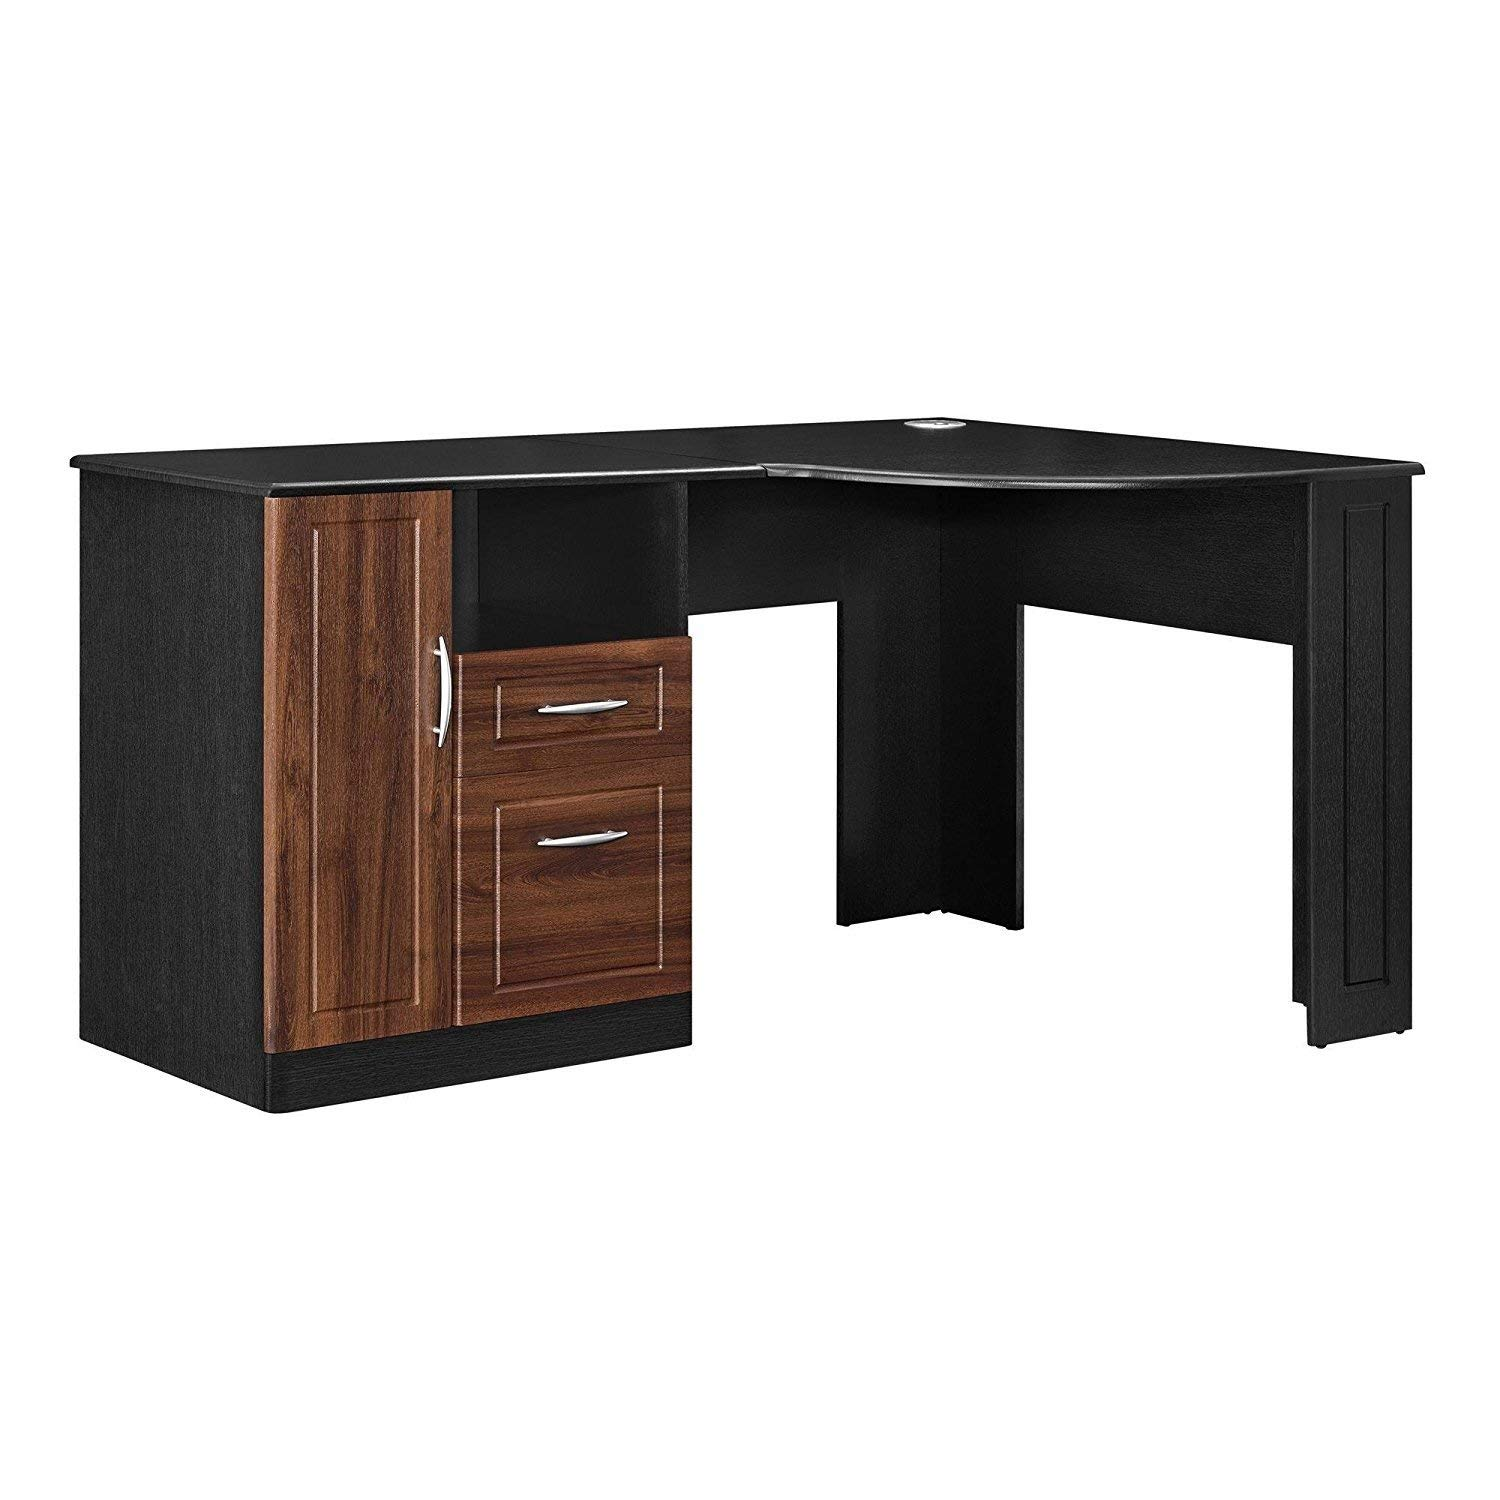 office table find corner accent black get quotations indoor multi function study computer home desk bedroom living room modern style small end with drawer pier wall decor bar